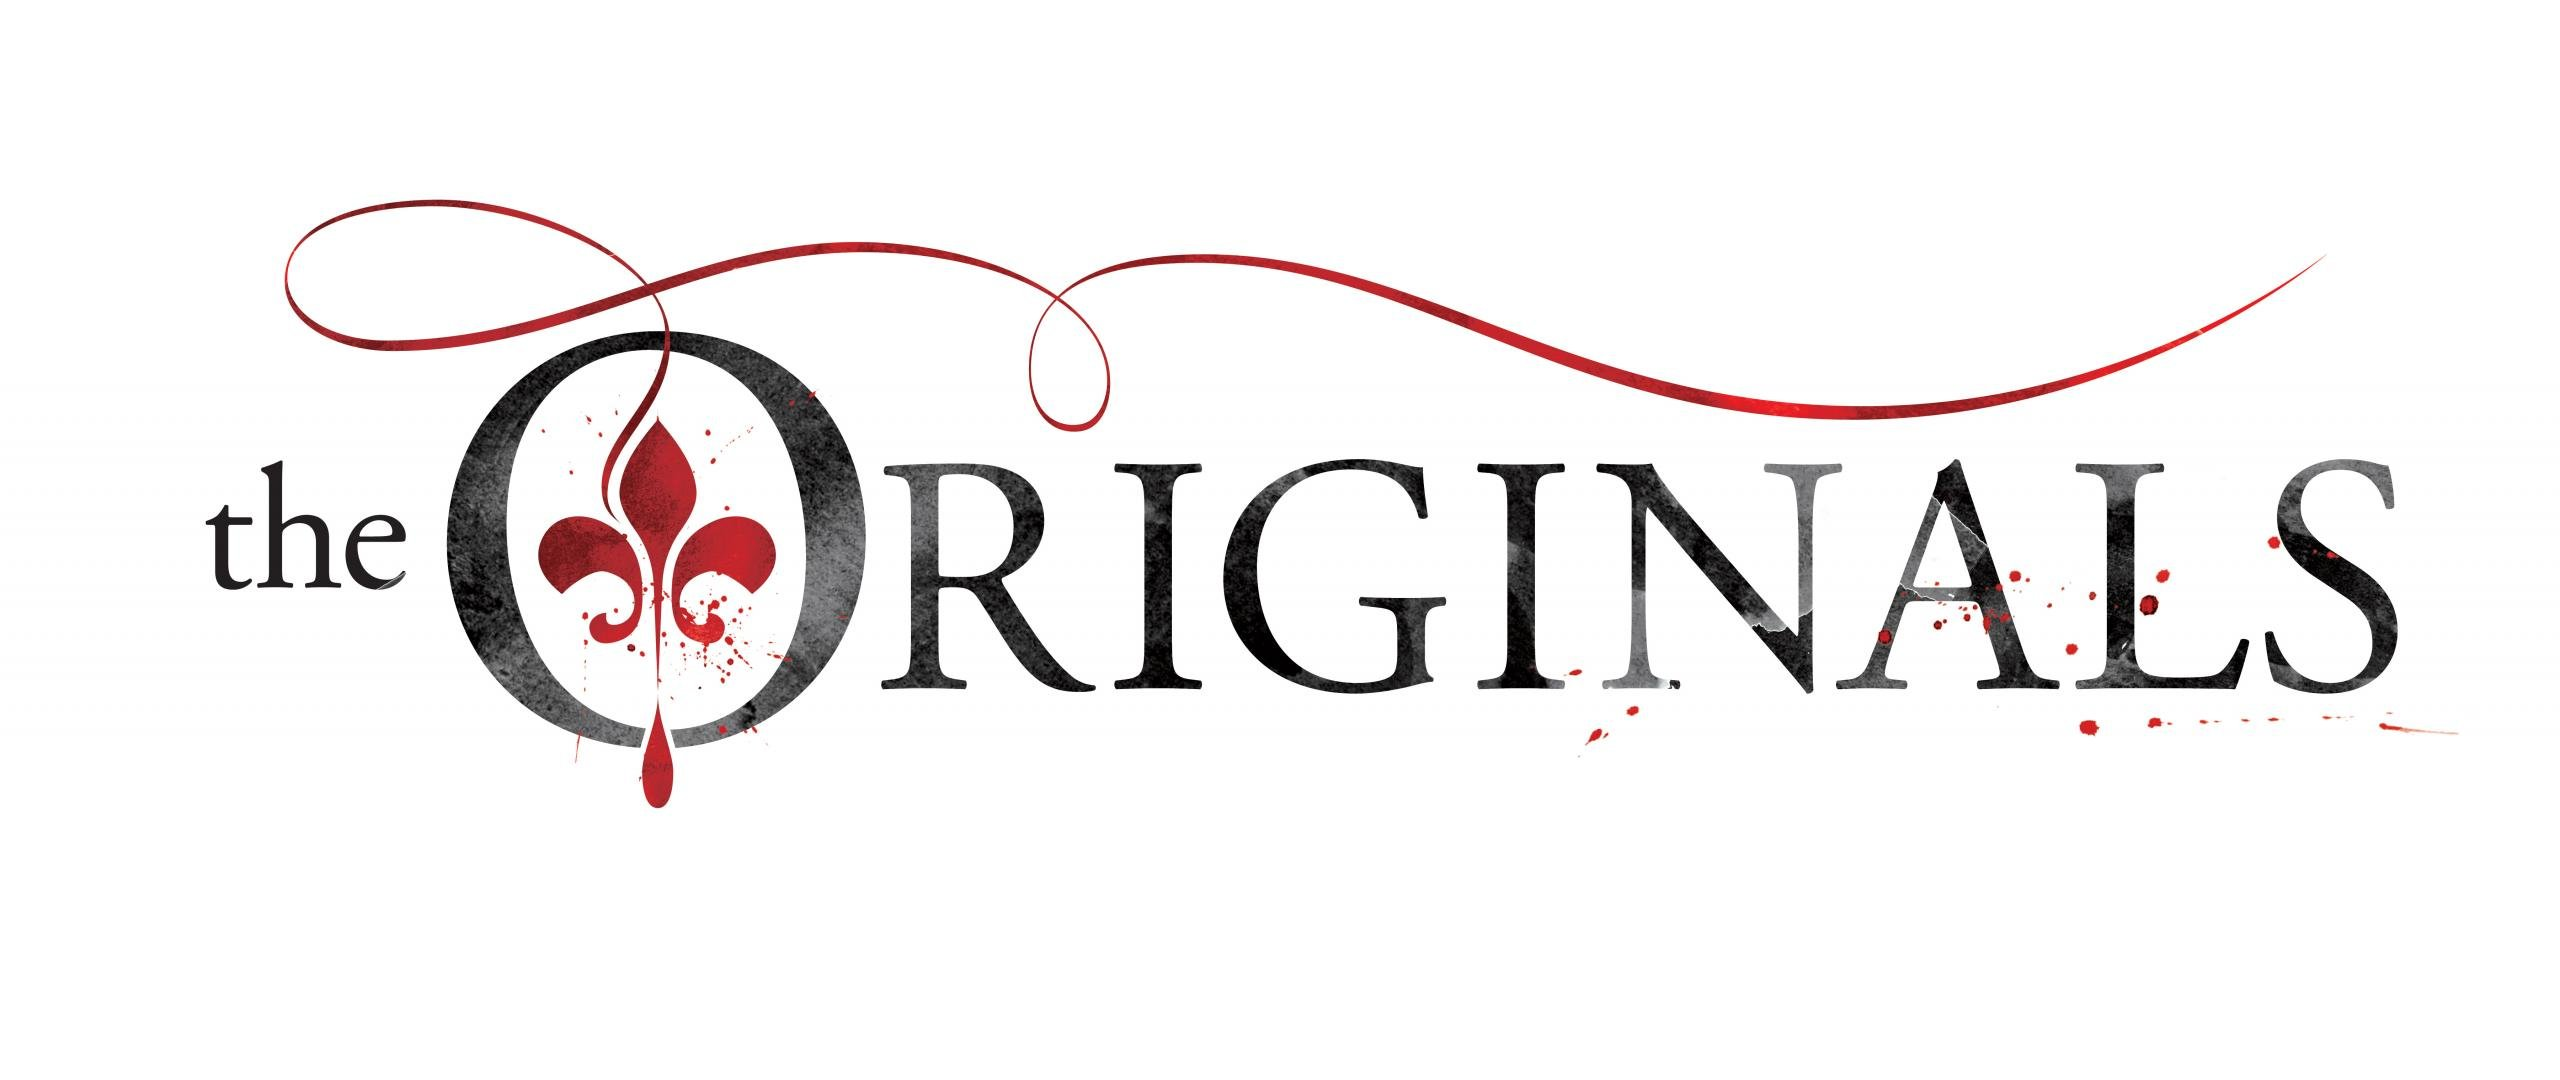 High Resolution The Originals Hd 2560x1080 Wallpaper Id292985 For